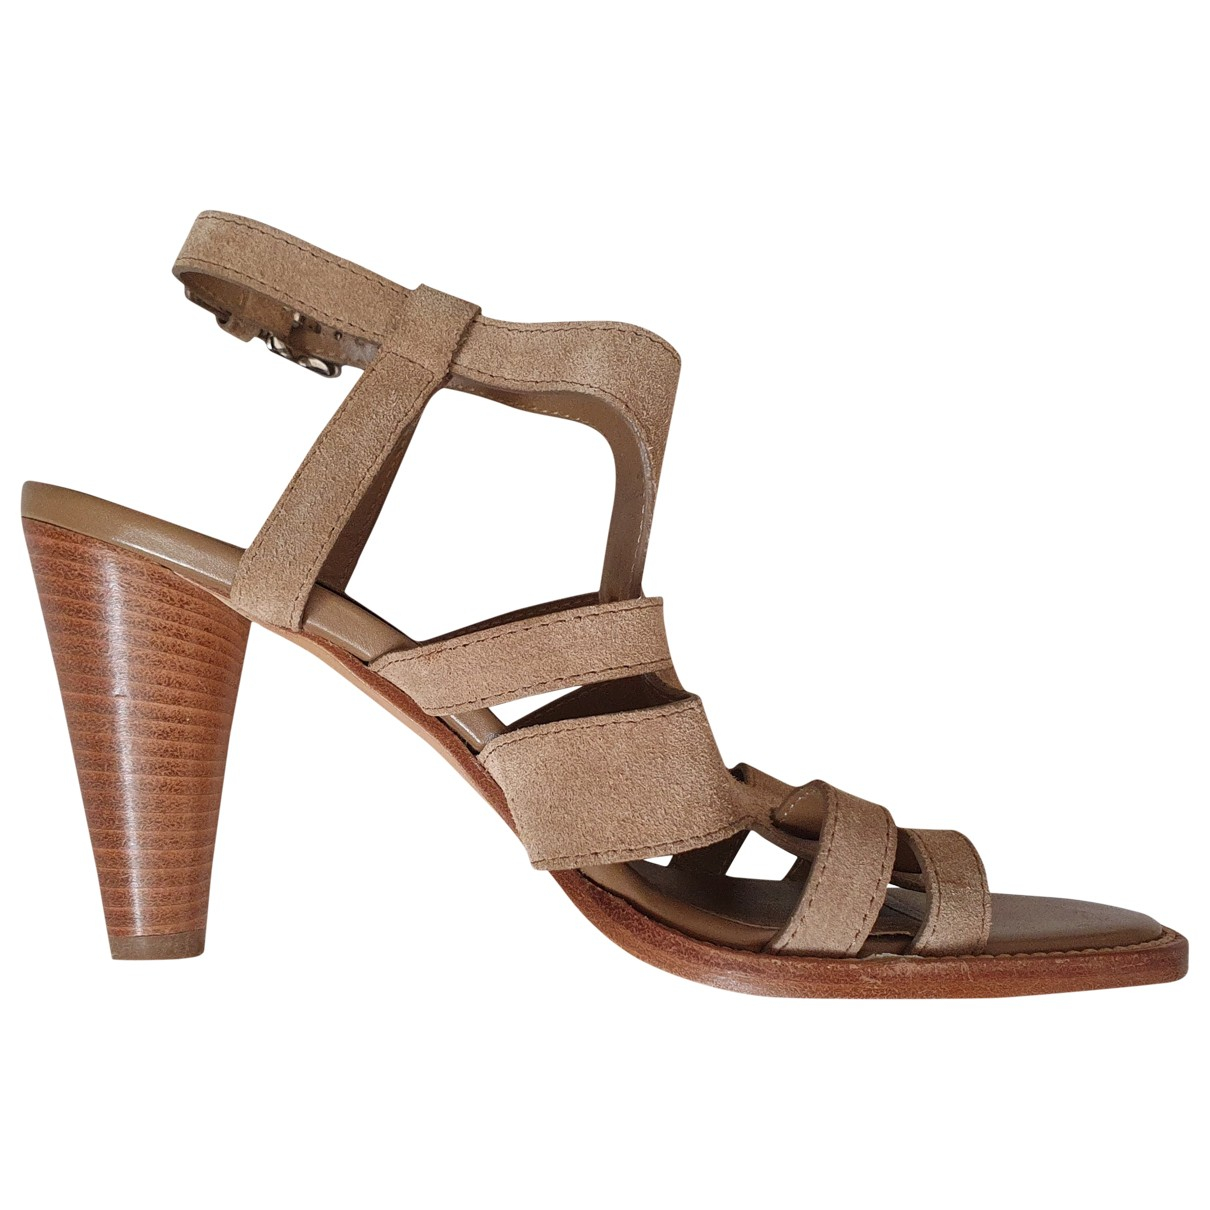 Tod's \N Beige Suede Sandals for Women 36 EU